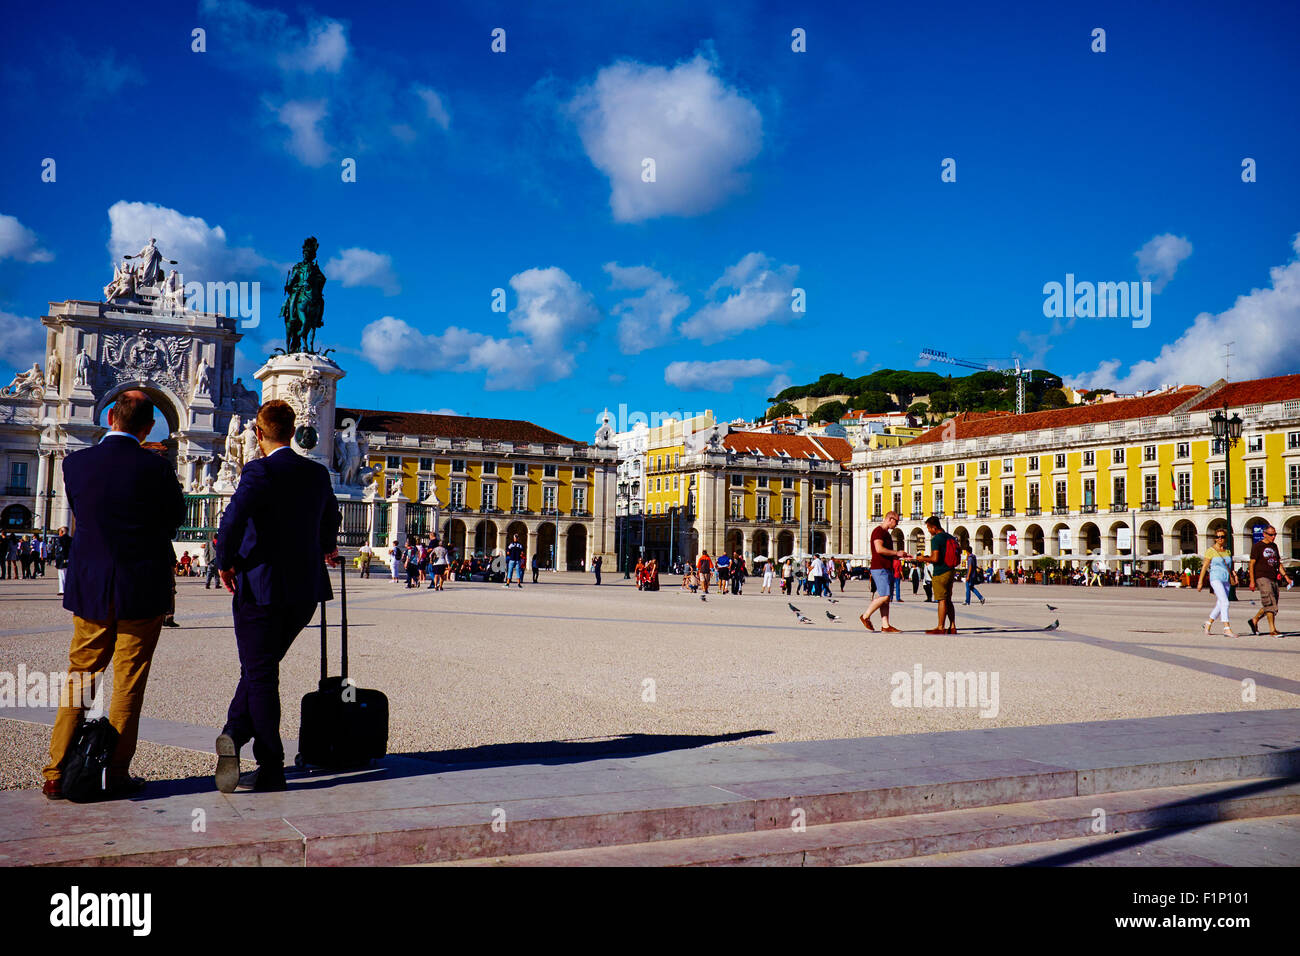 Portugal, Lisbonne, Praca do Comercio, ou Place du Commerce. Il est également connu sous le nom de Terreiro Photo Stock